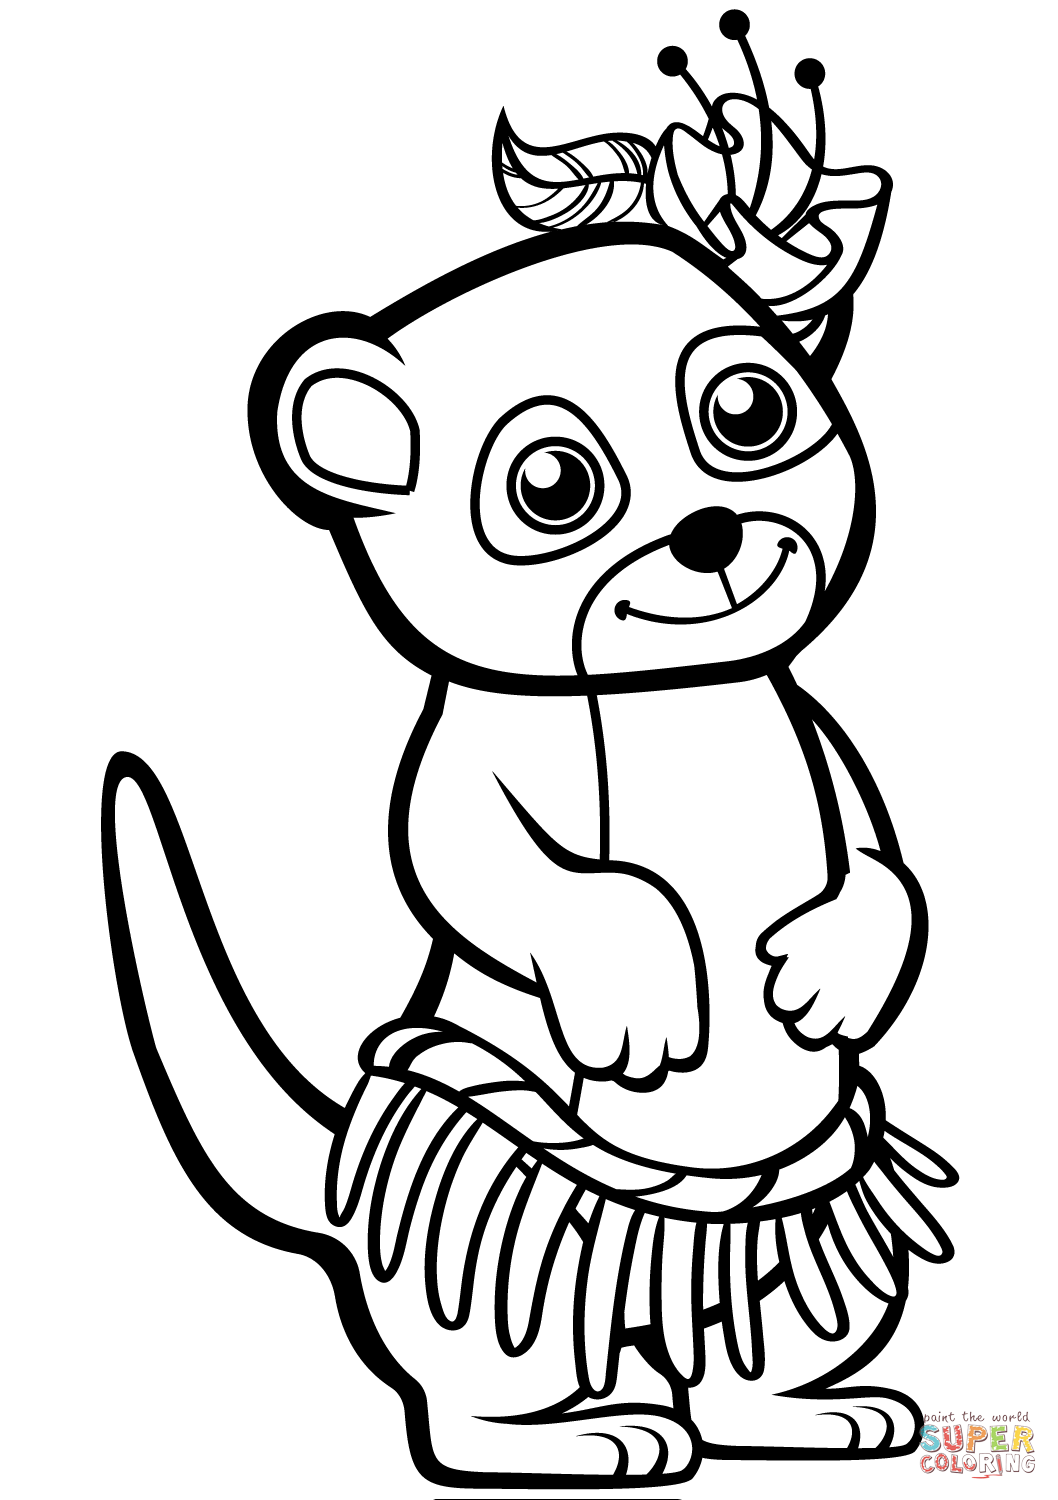 funny coloring pages to print funny scooby doo coloring pages for kids printable free funny to coloring pages print